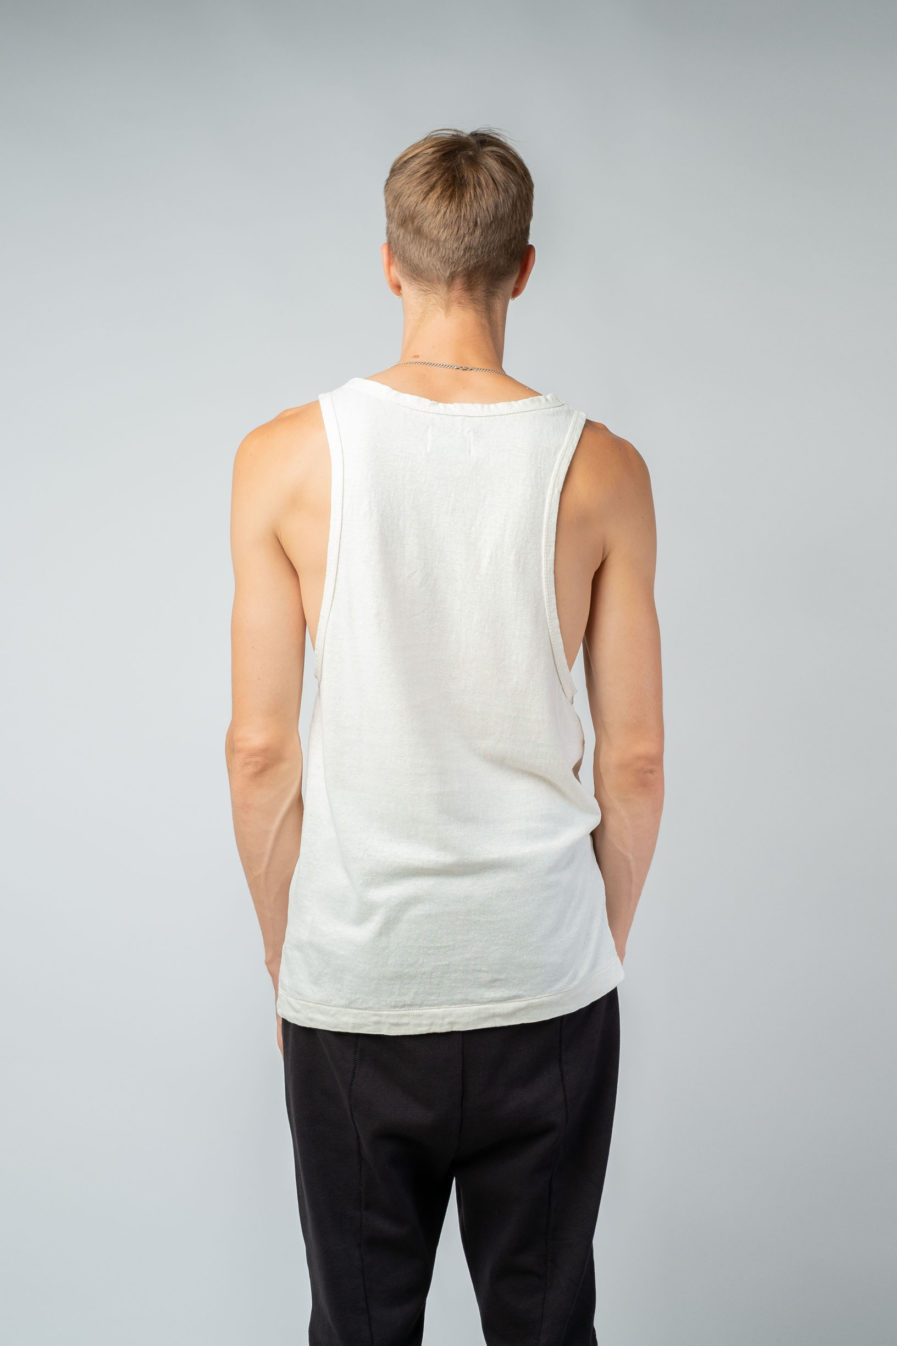 MAN unisex singlet tanktop hemp organic cotton LAU Blank canvas back